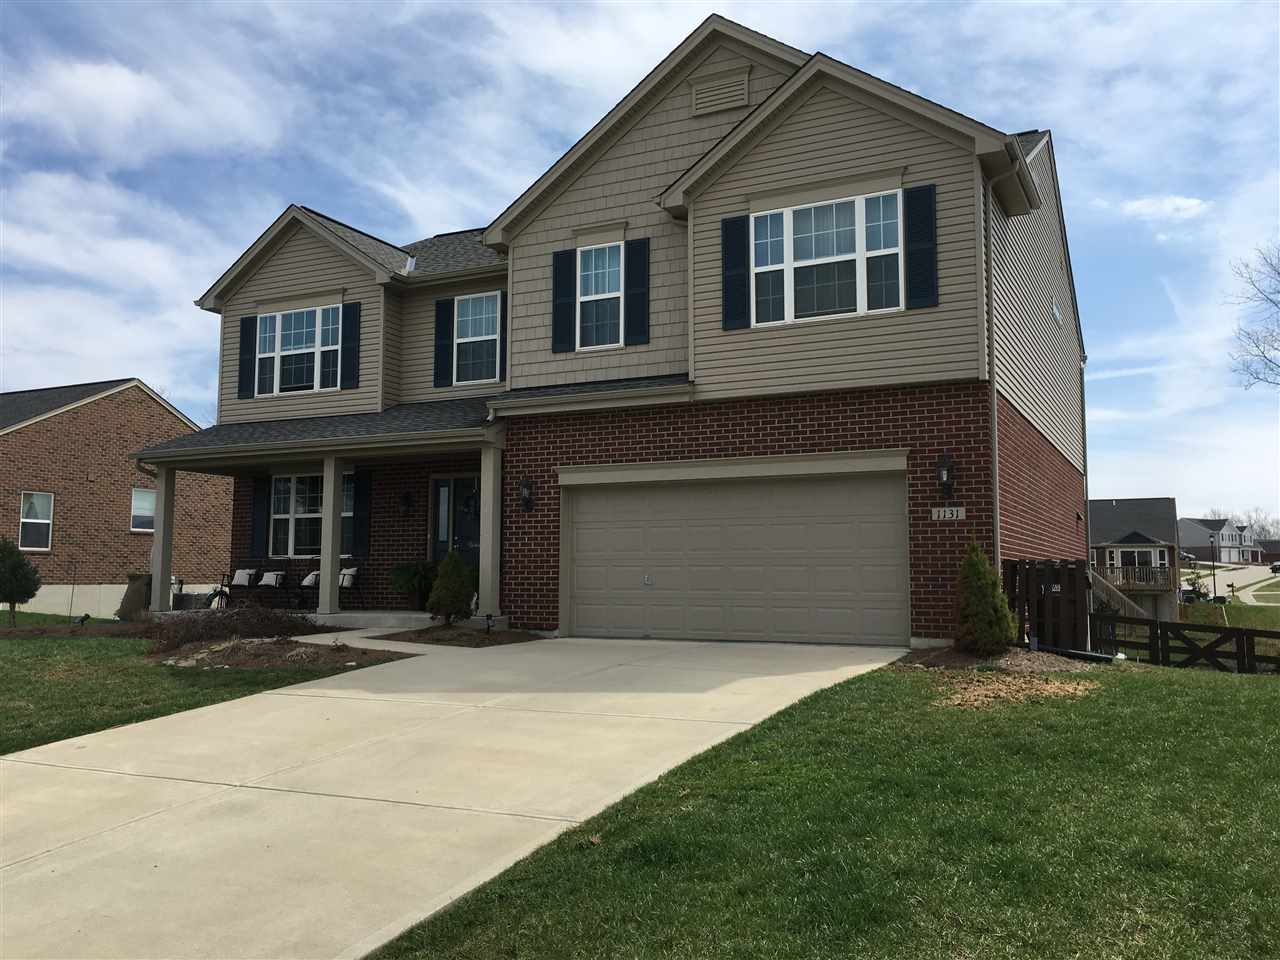 Photo 1 for 1131 Laurelwood Ln Independence, KY 41051